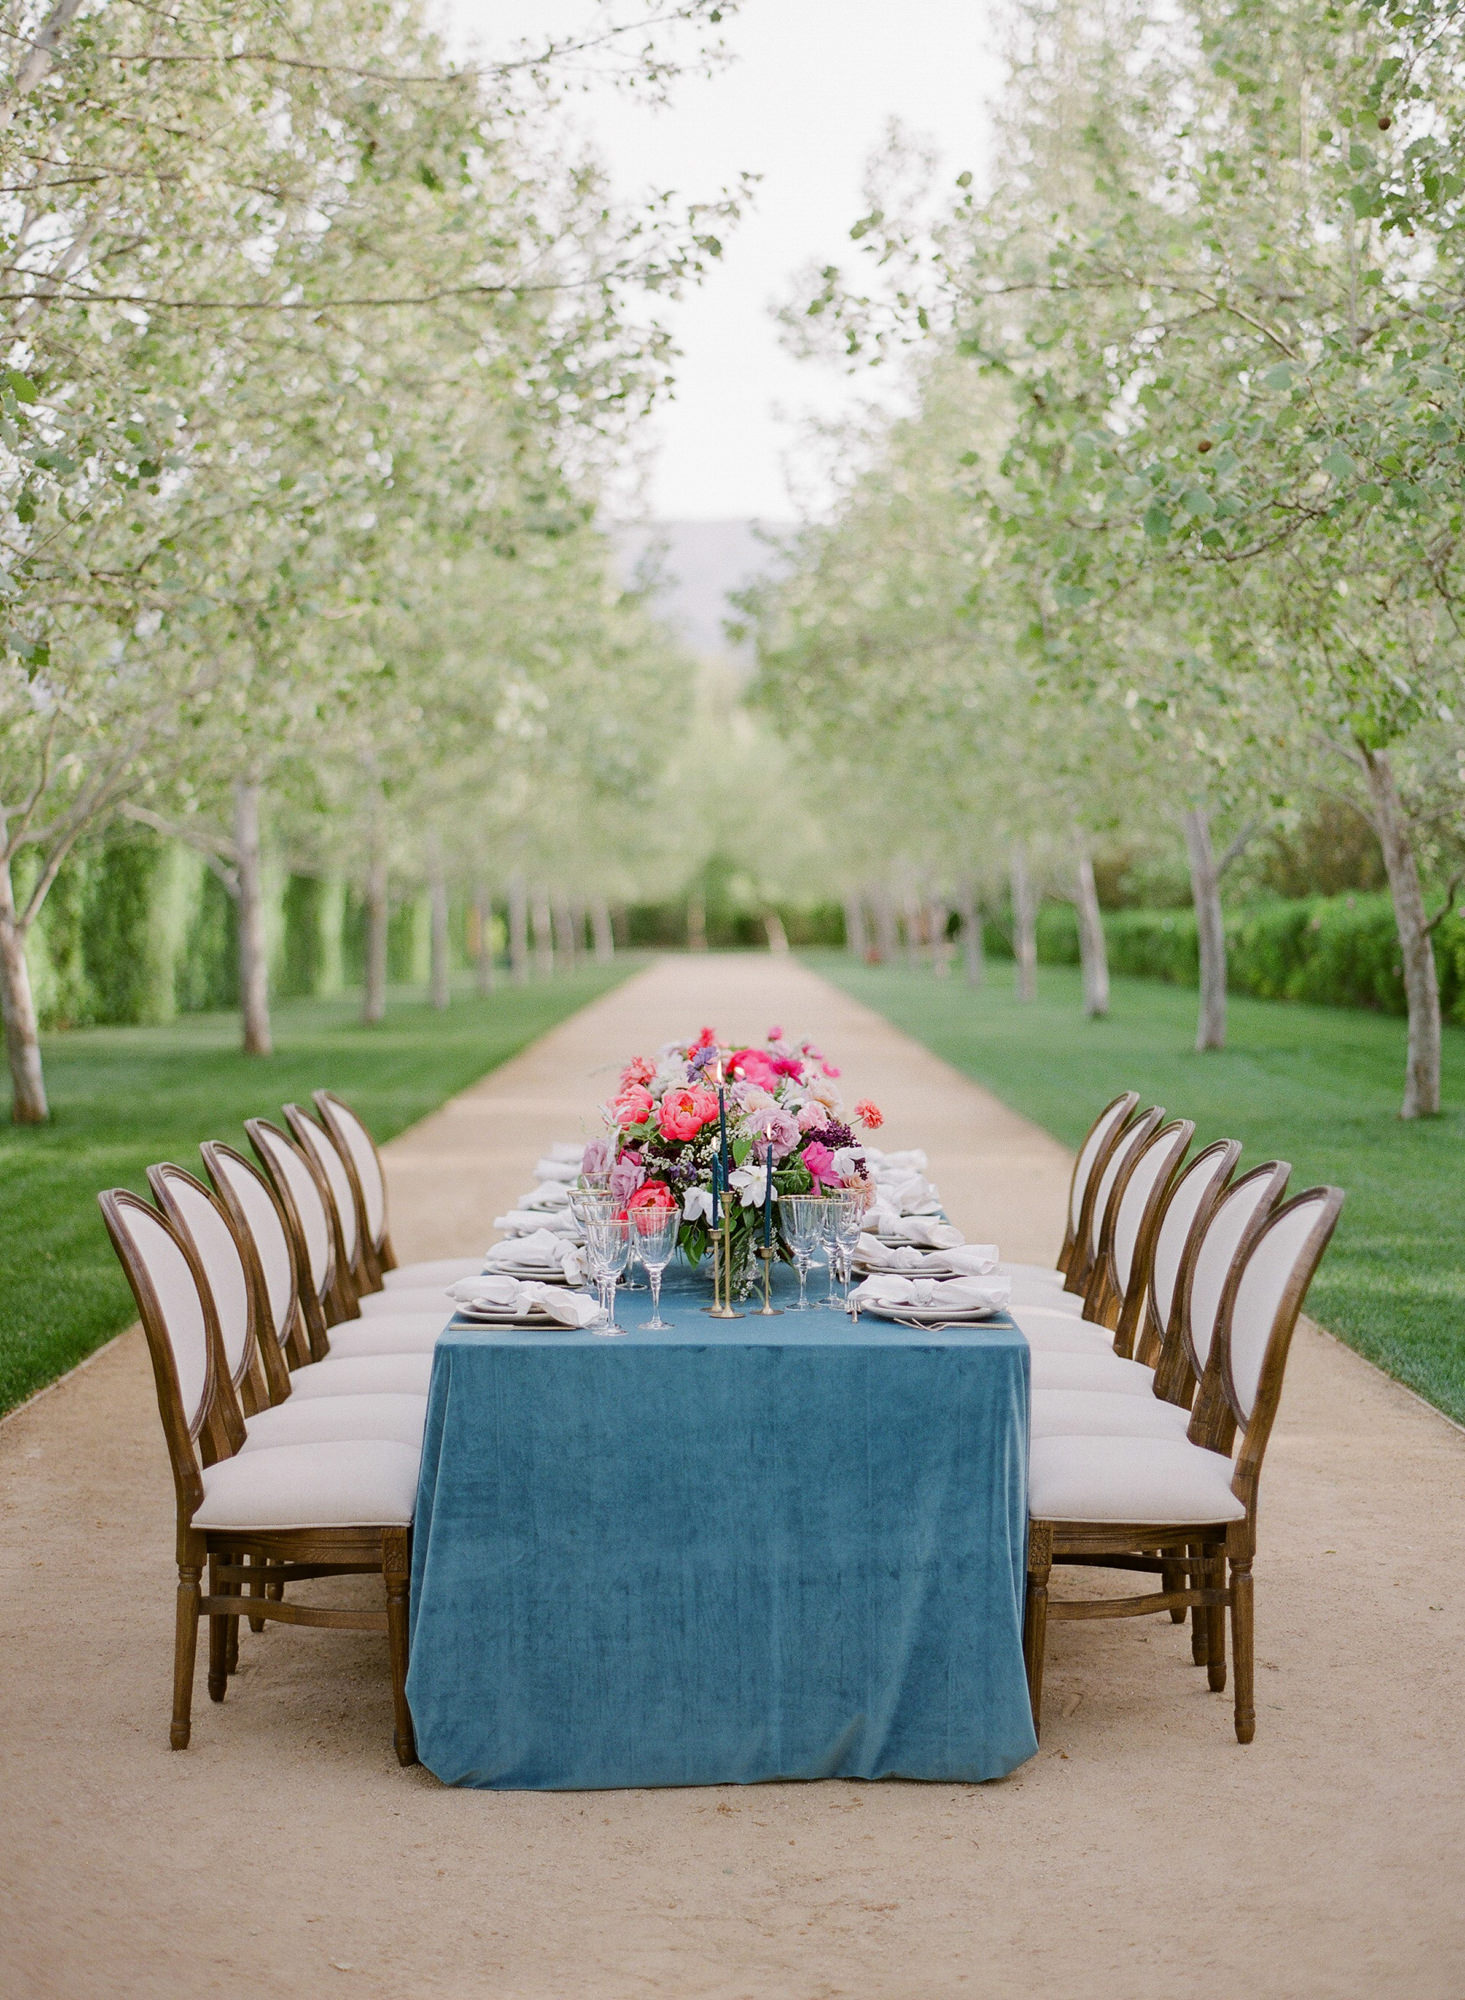 Reception table with opera chairs, rose centerpieces, and blue tablecloth - photo by Greg Finck